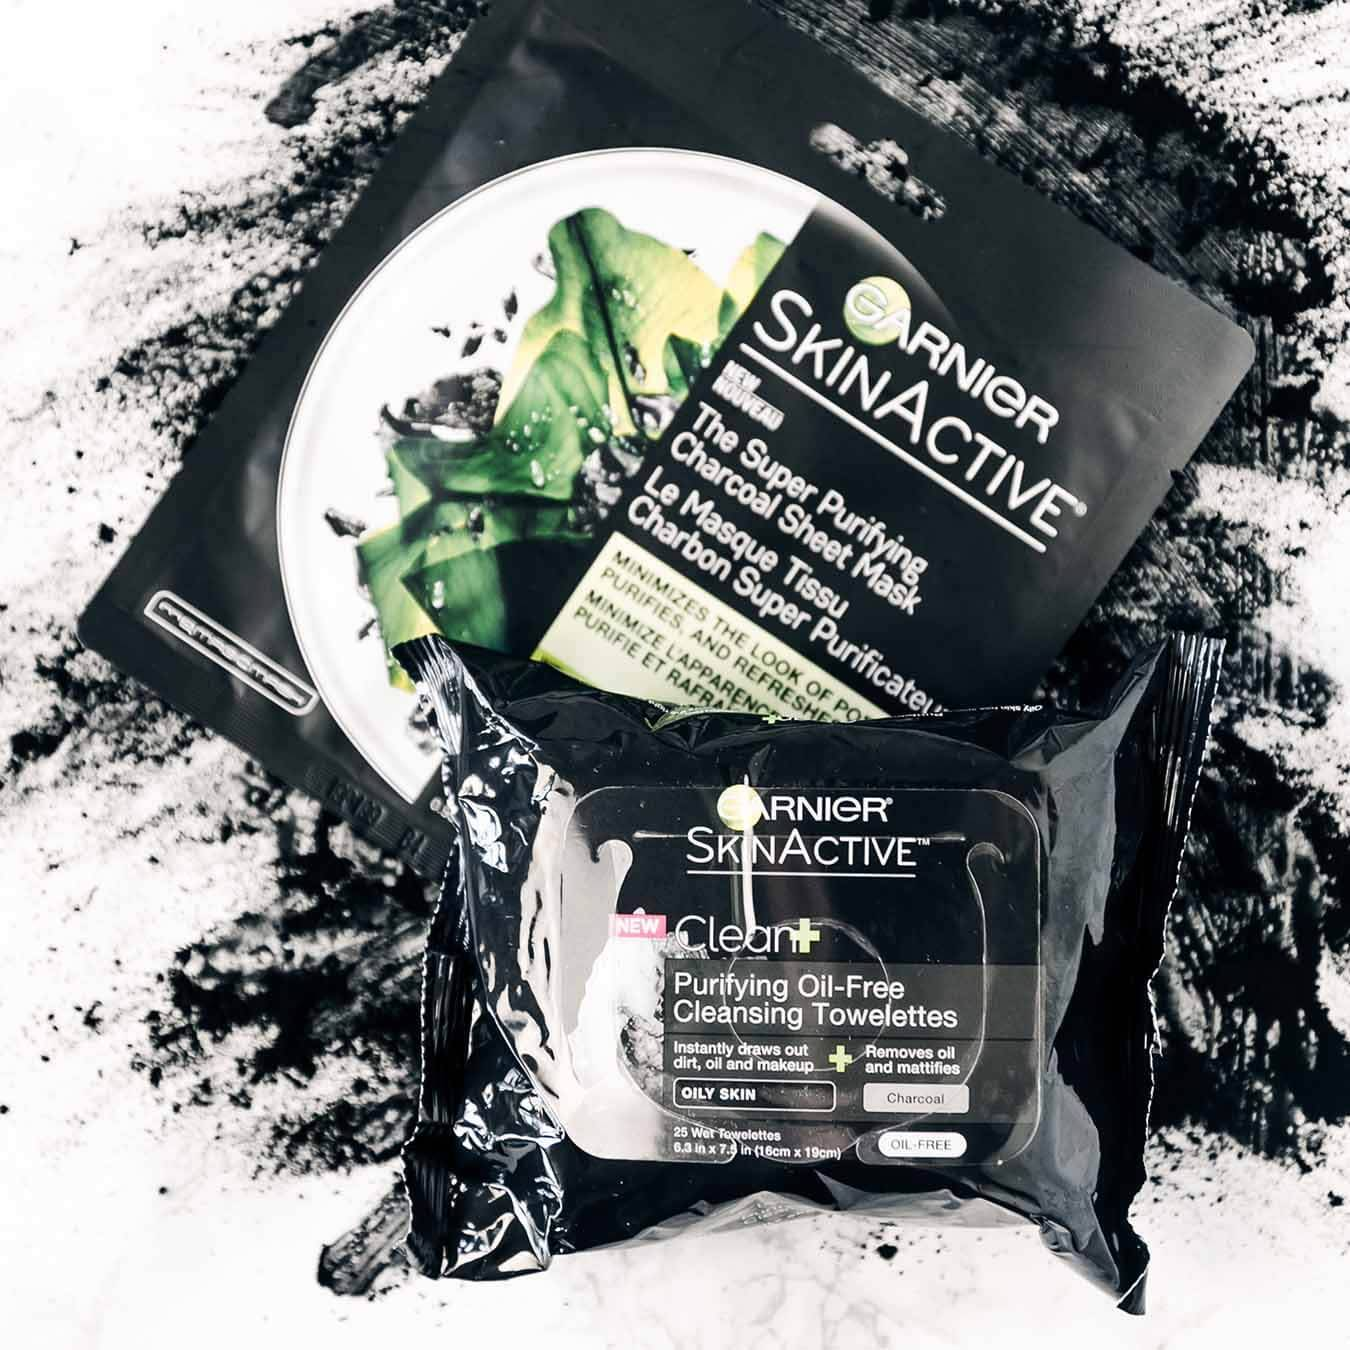 Garnier SkinActive Super Purifying Charcoal Sheet Mask and SkinActive Clean+ Purifying Oil-Free Cleansing Towelettes on an explosion of charcoal powder on pinkish white marble.